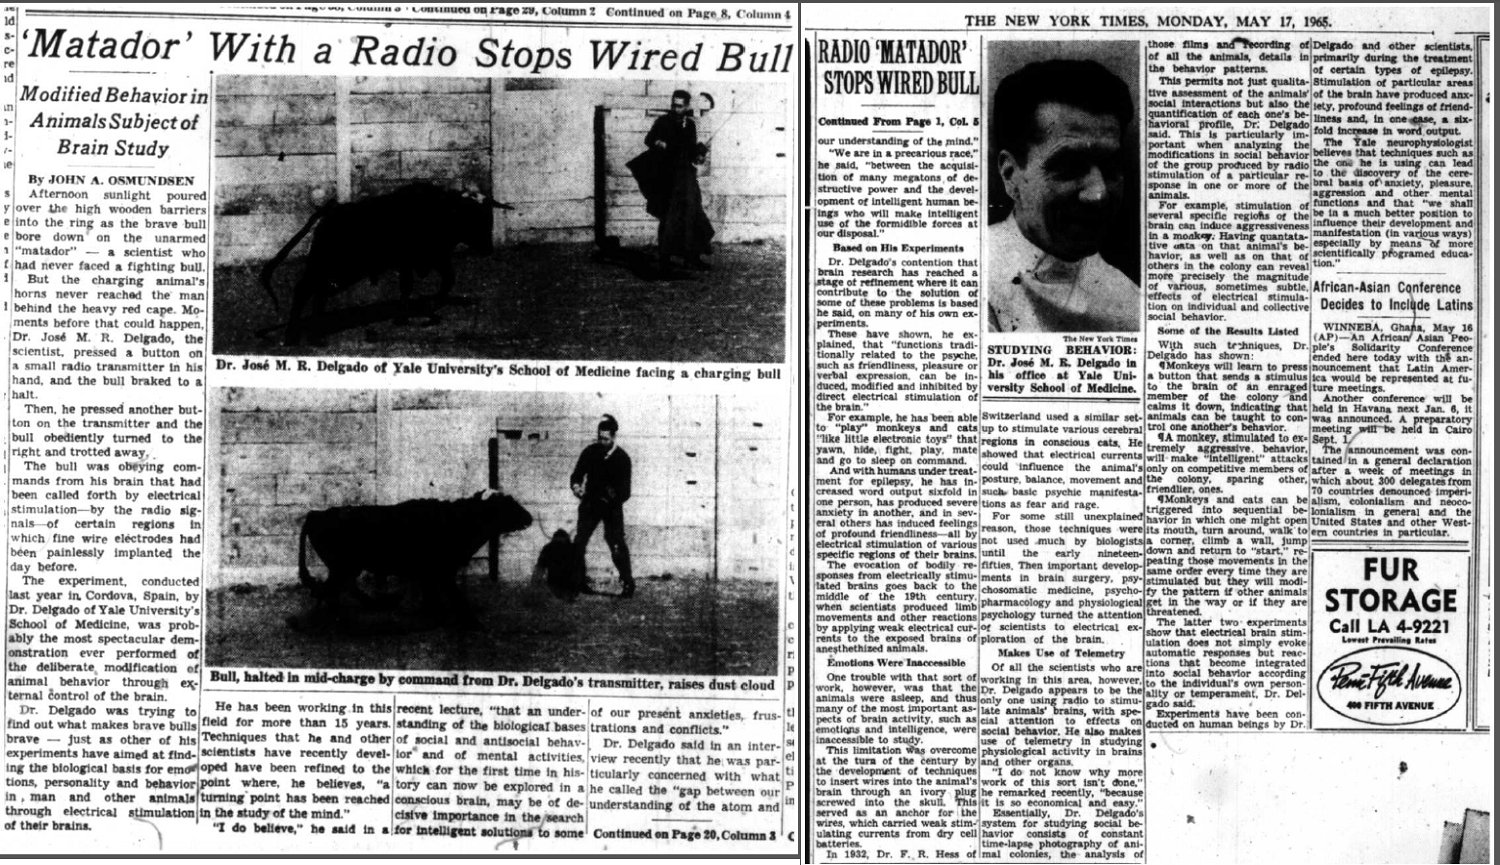 John A. Osmundsen, 'Matador' With a Radio Stops Wired Bull, The New York Times, 17 May 1965